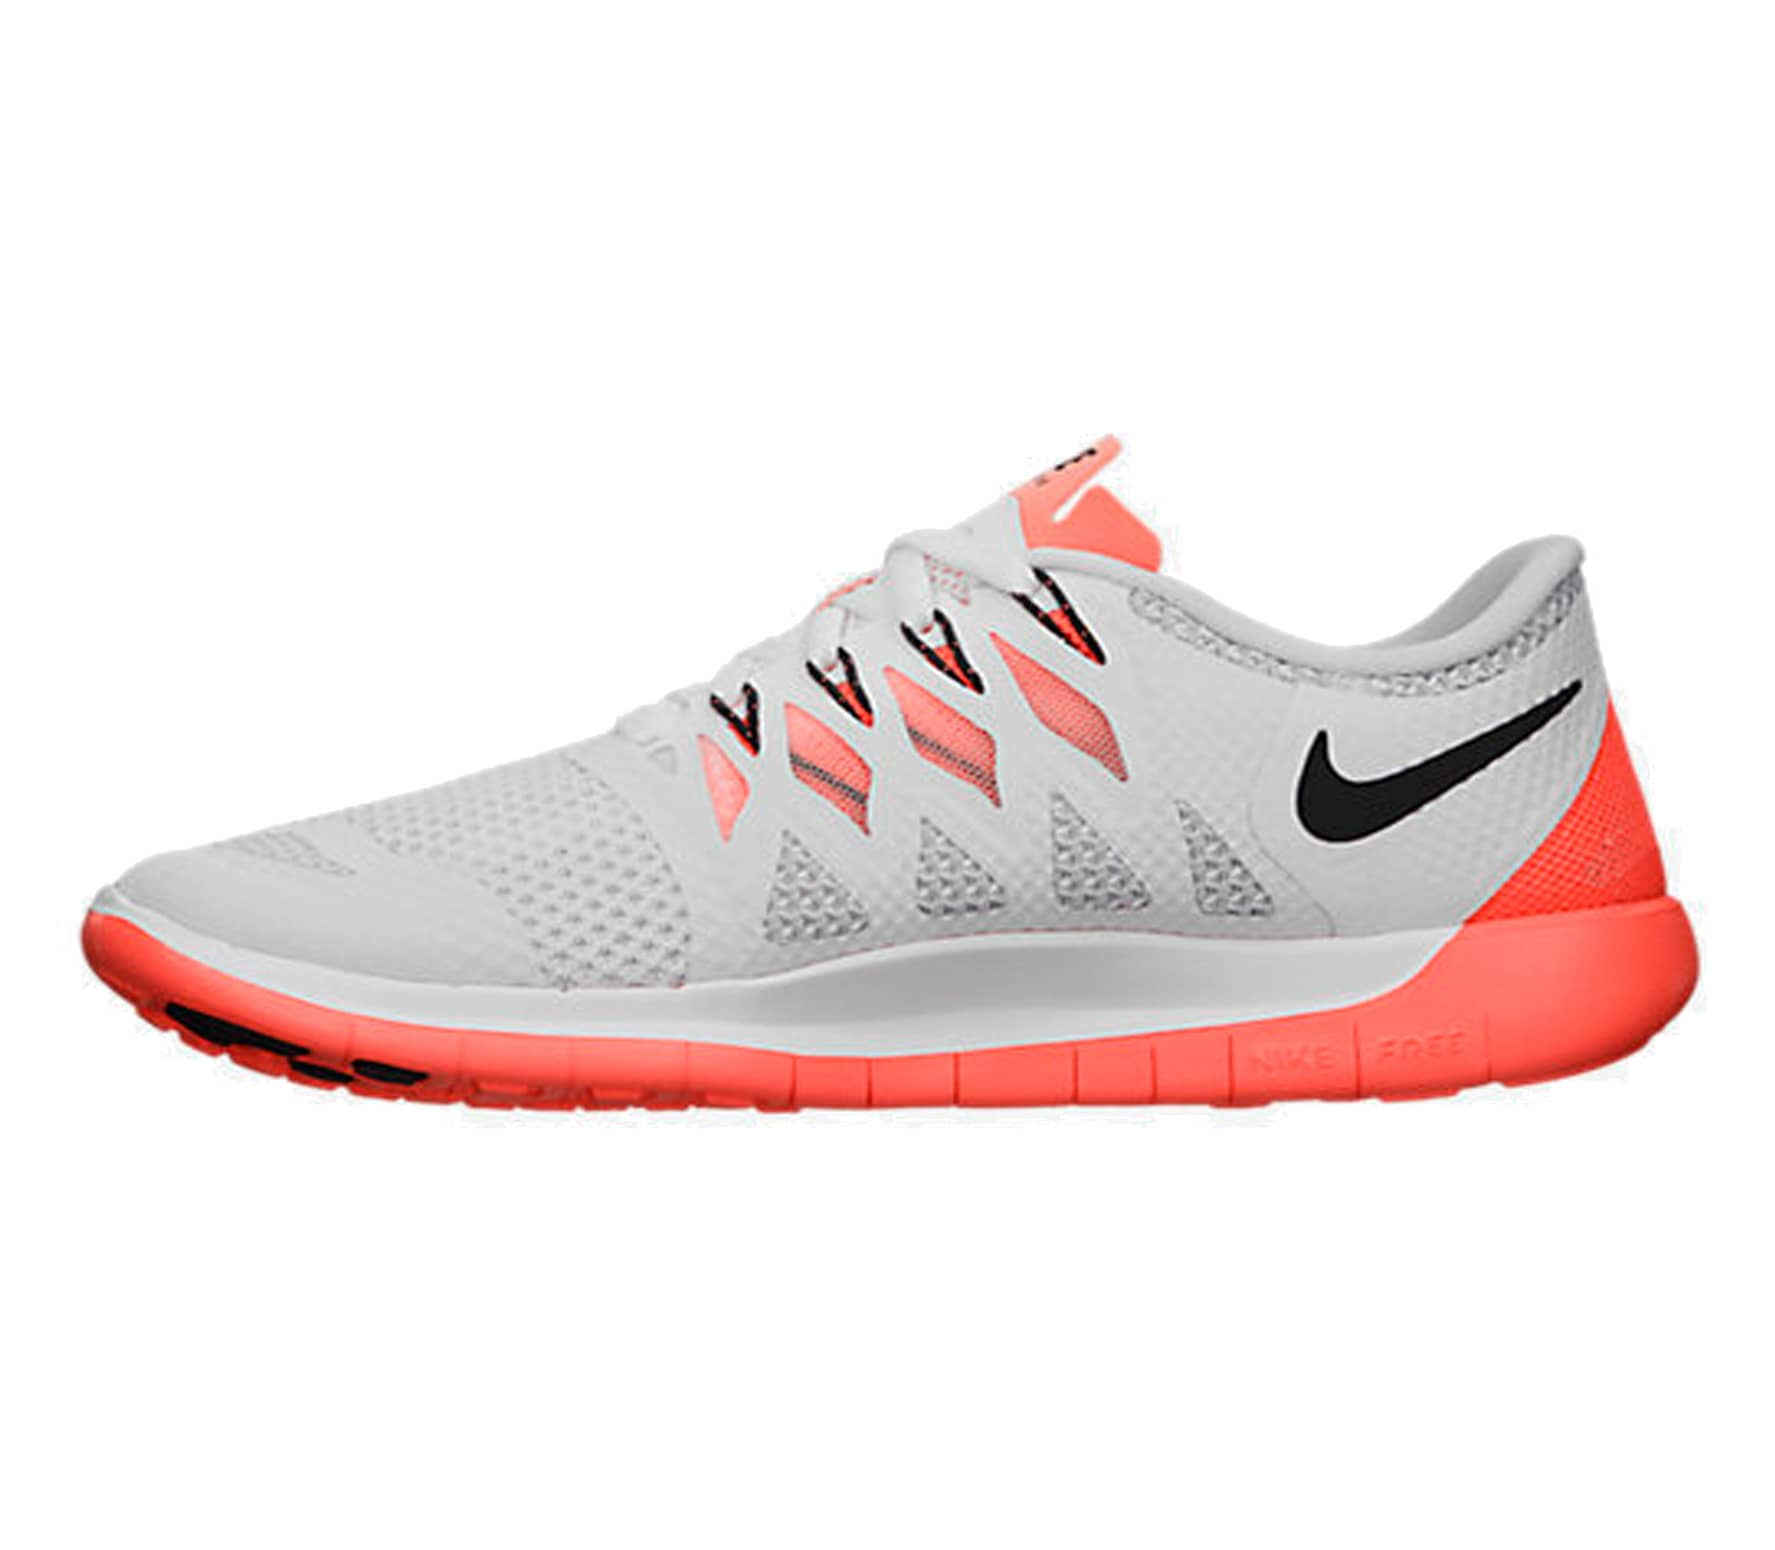 new concept 6139b 916c7 Nike - Free 5.0 women s running shoes (white orange)